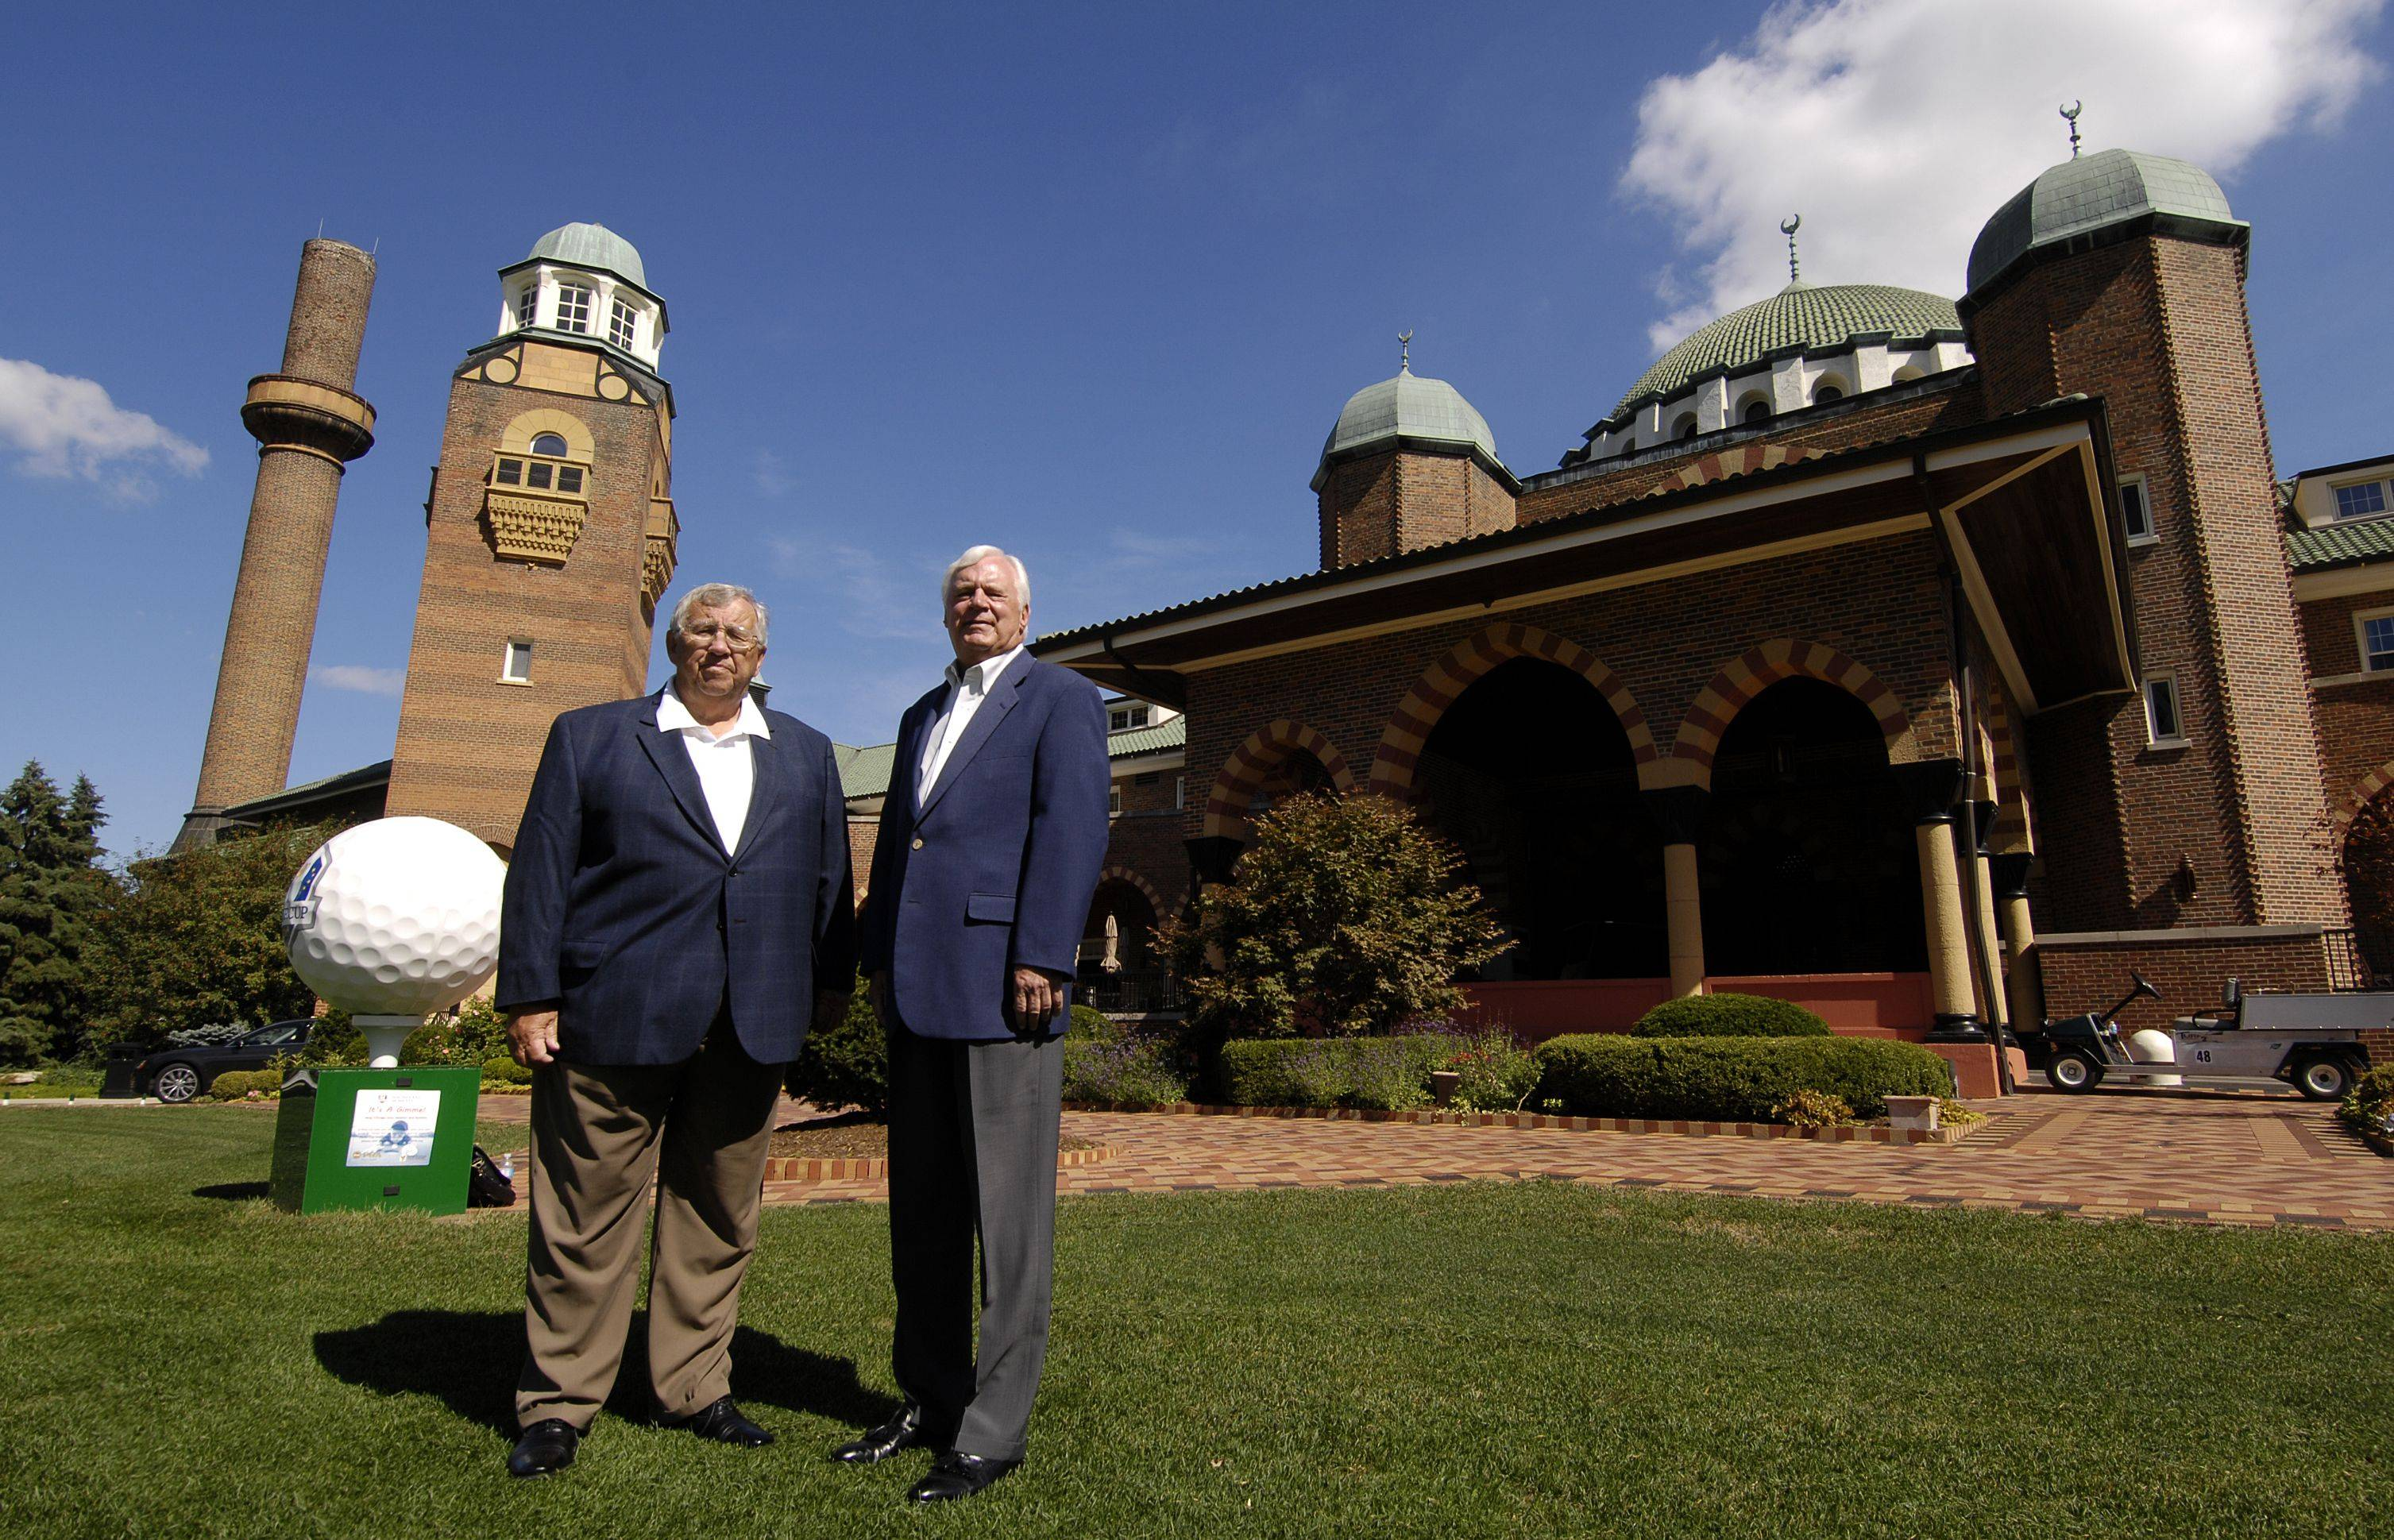 Medinah's storied past adds to allure